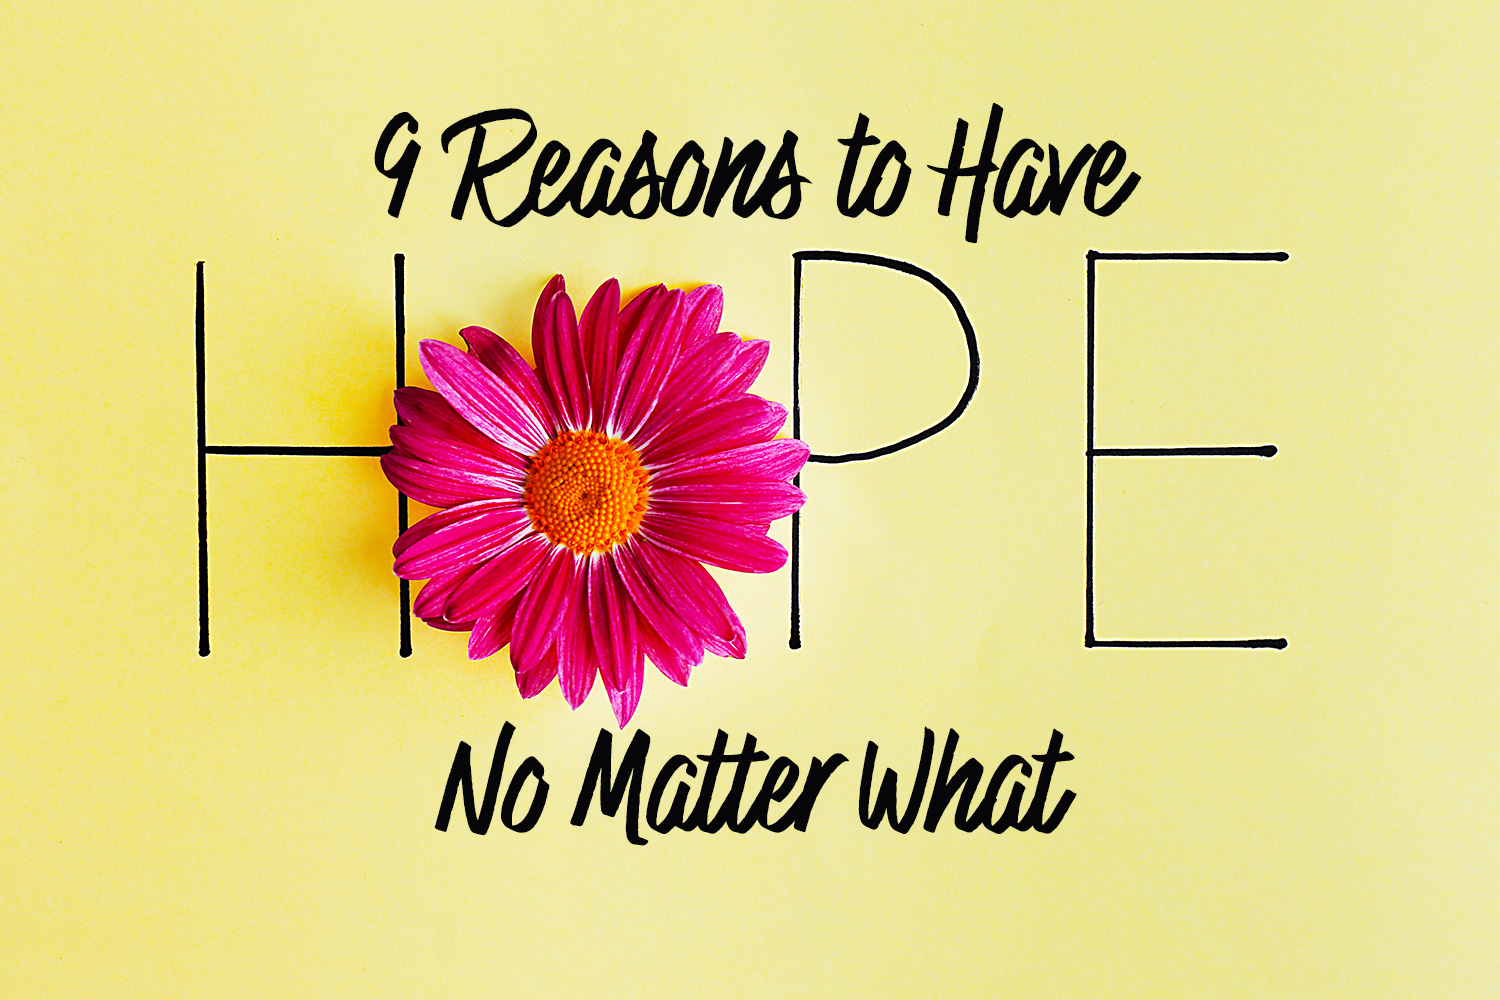 9 Reasons to Have Hope No Matter What